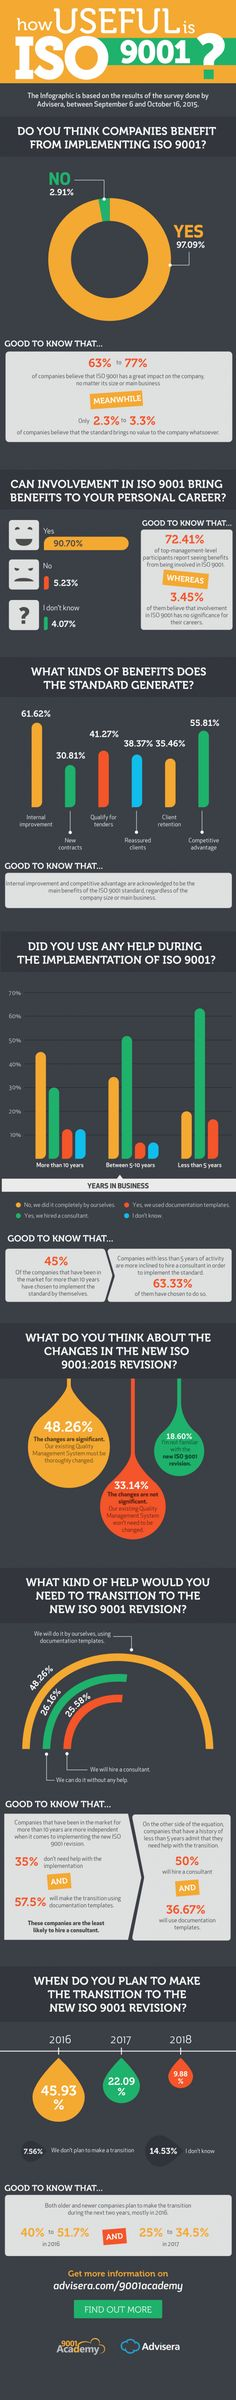 Infographic: how useful is ISO 9001? - SHP Online